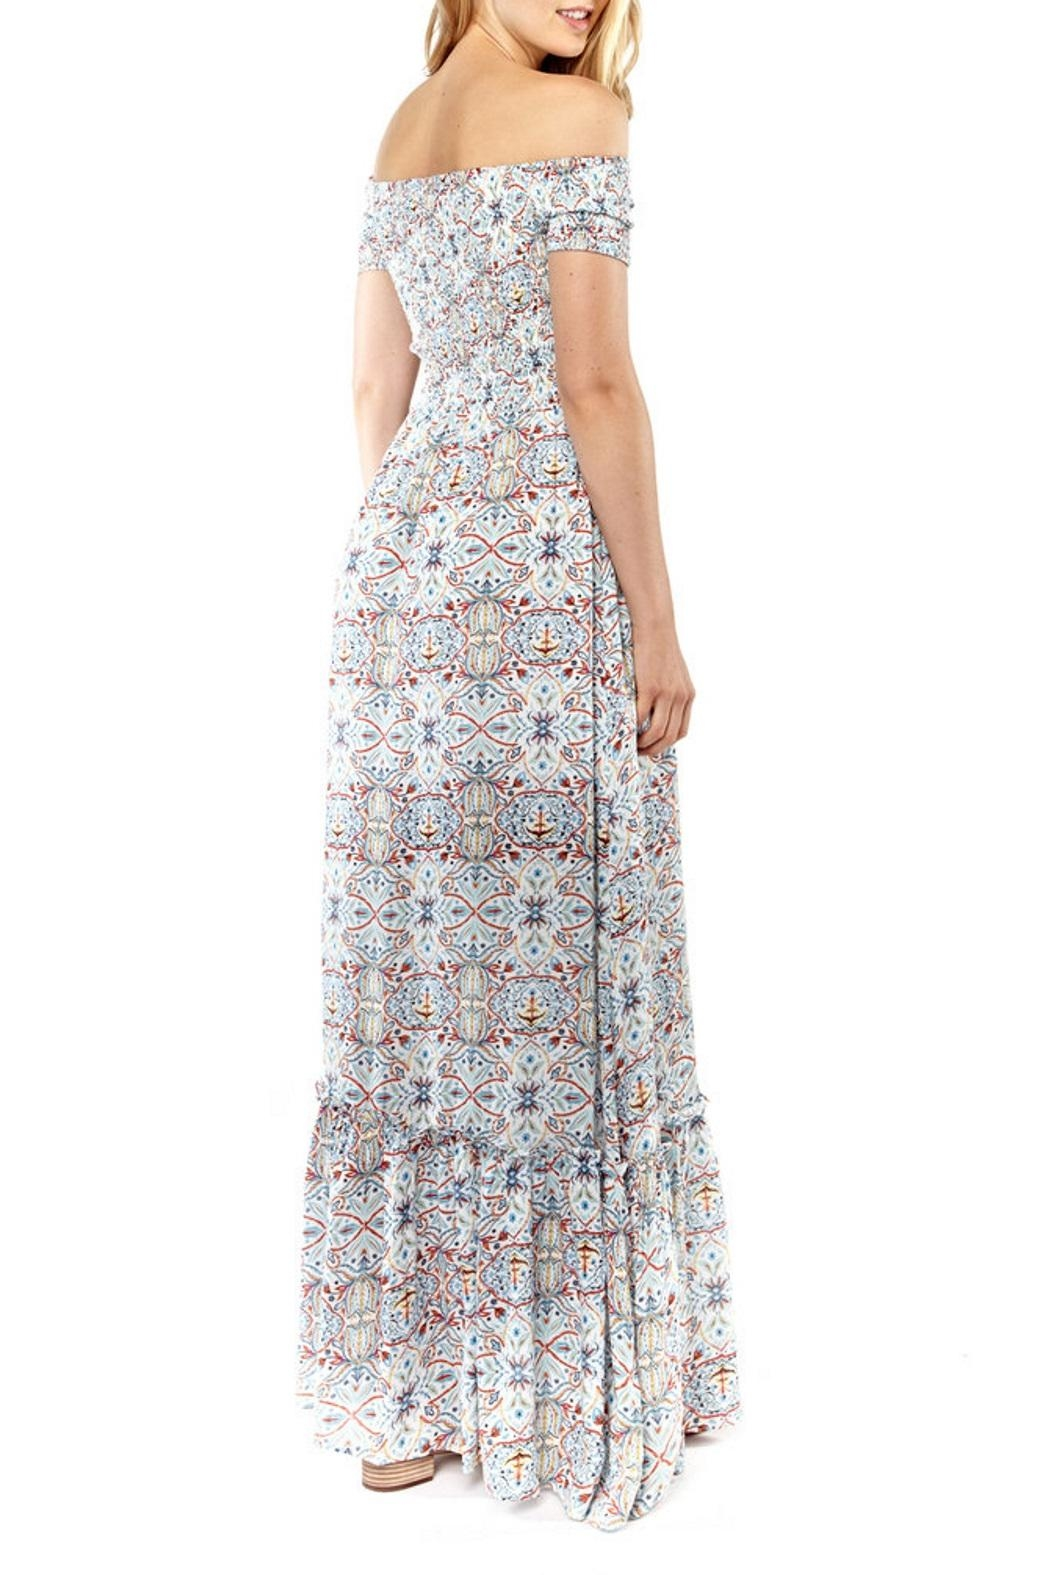 Cooper & Ella Senna Maxi Dress - Front Full Image